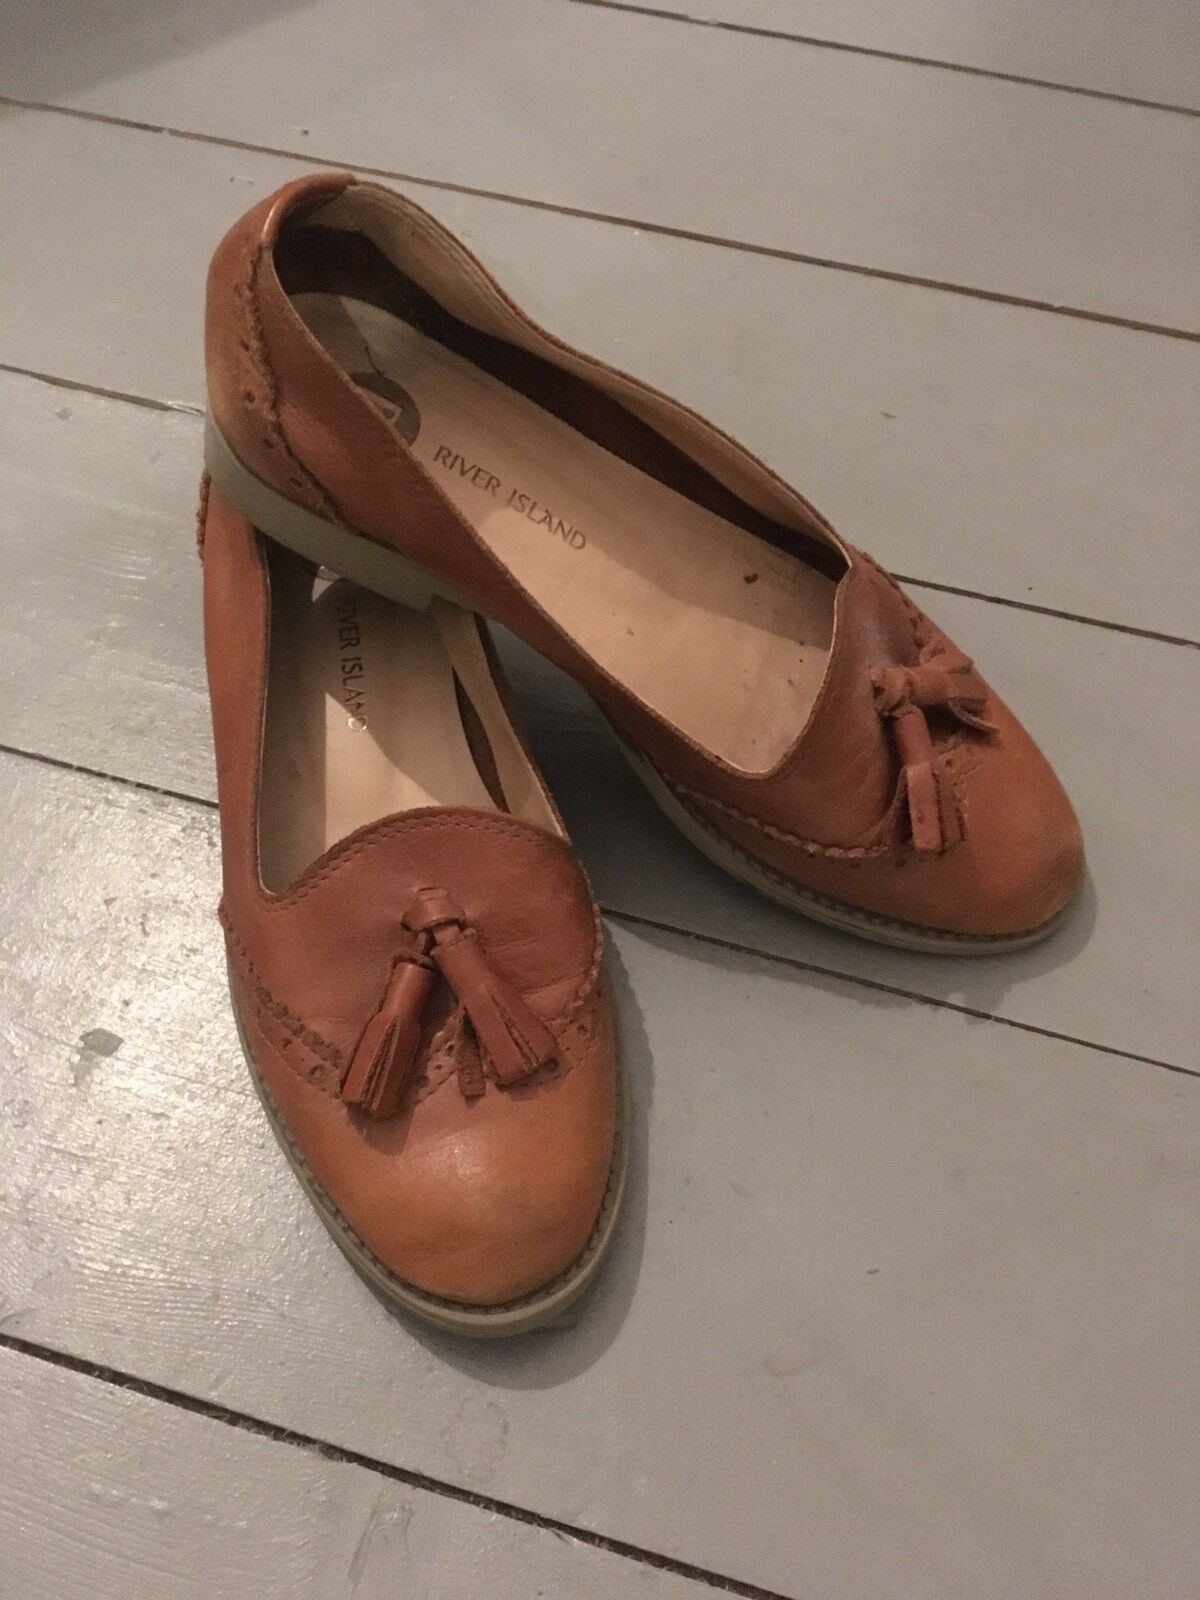 River Island Tan Leather Tassel Loafers Size 38. Vintage Style.